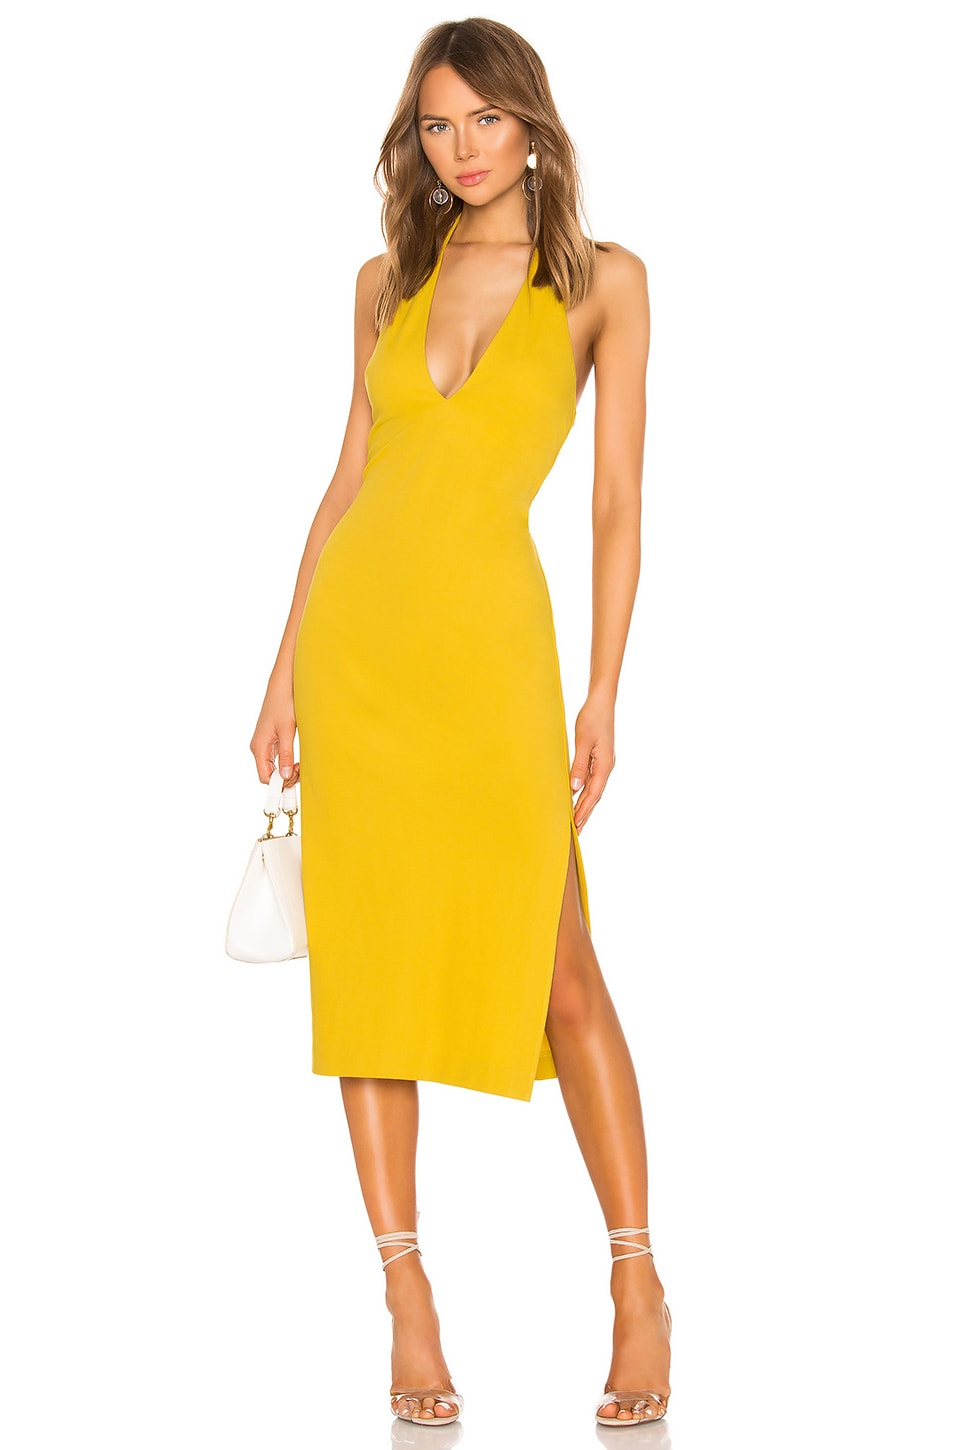 NBD Koh Samui Midi Dress in Saffron Yellow